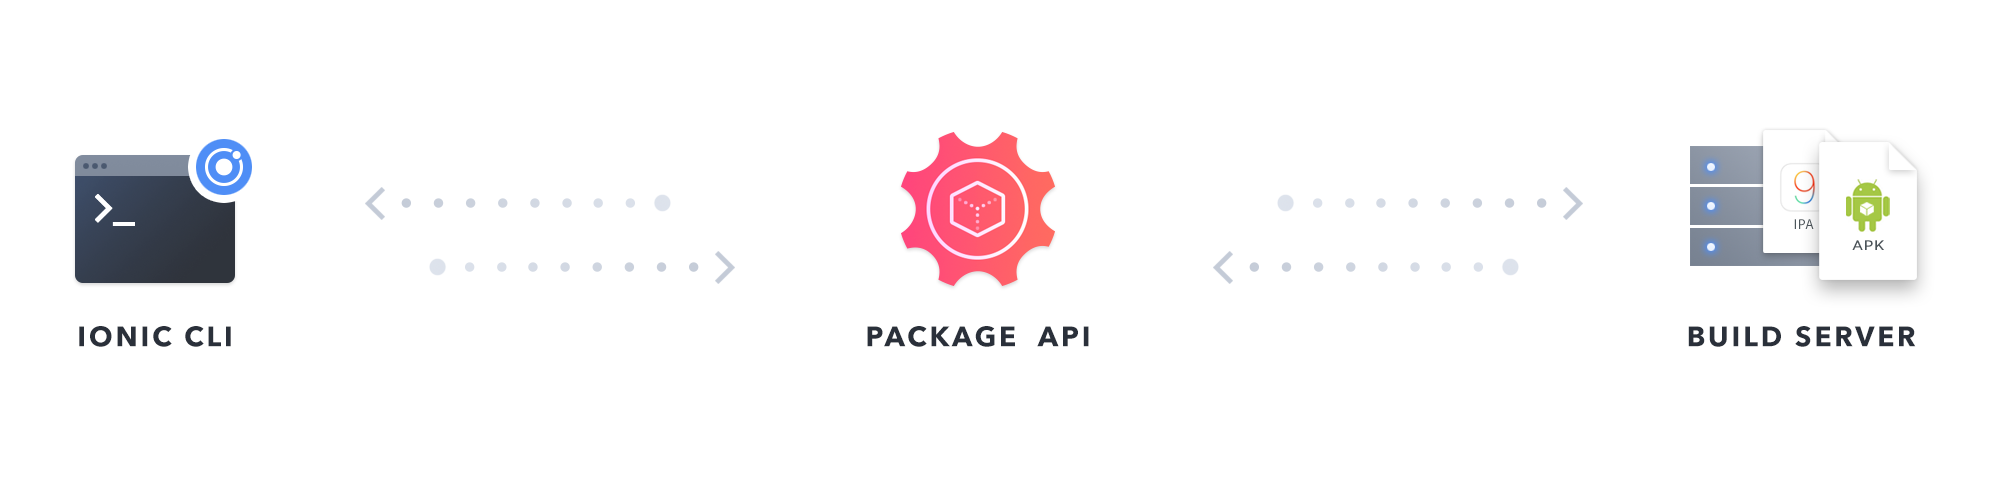 package-api-diagram-1